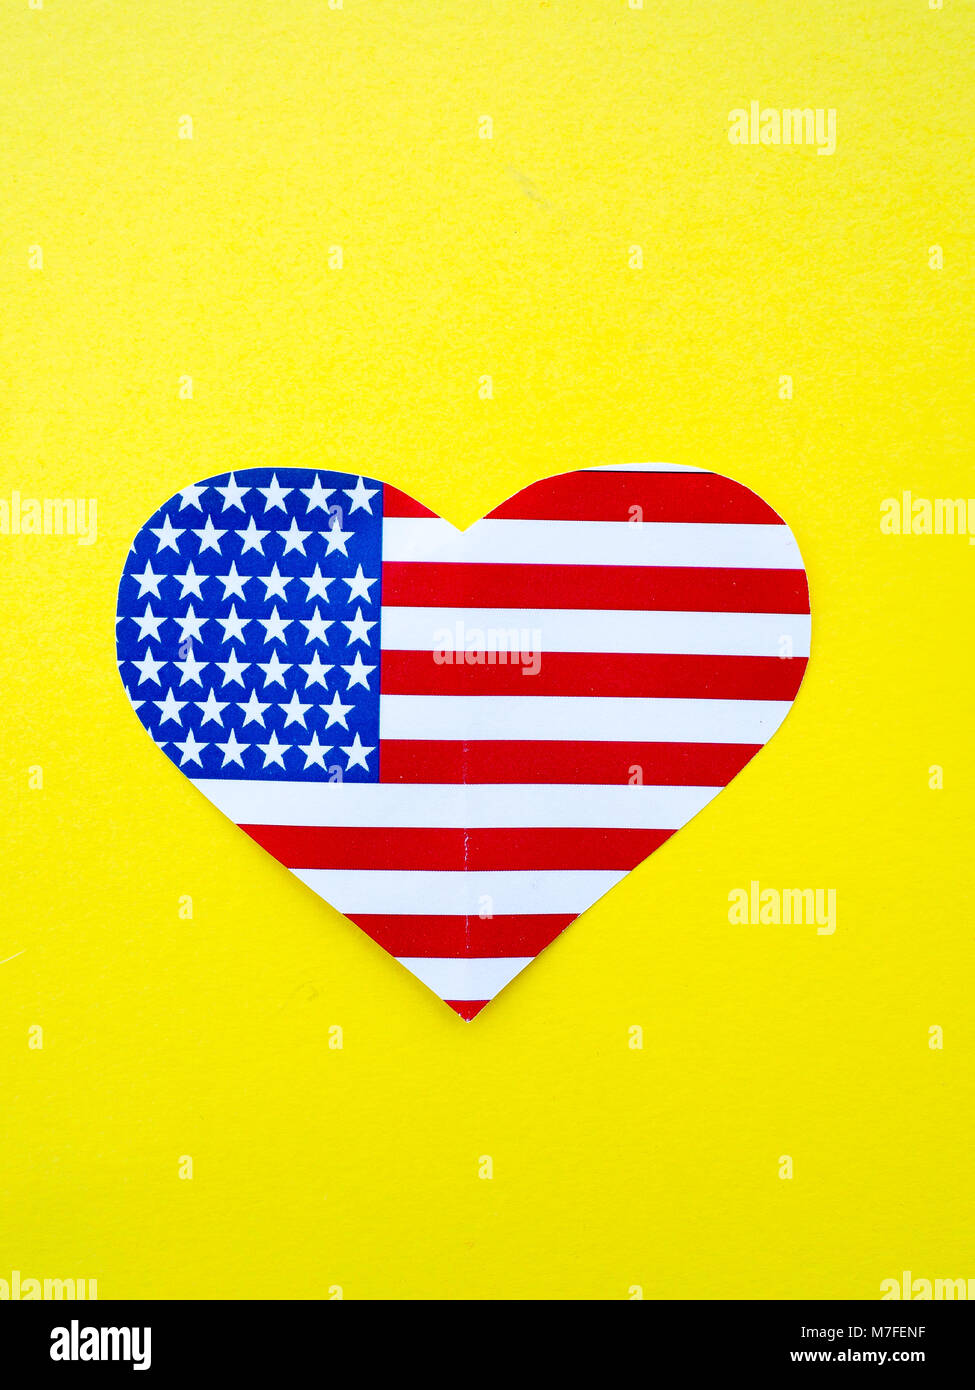 American Flag In Shape Heart Stock Photos & American Flag In Shape ...